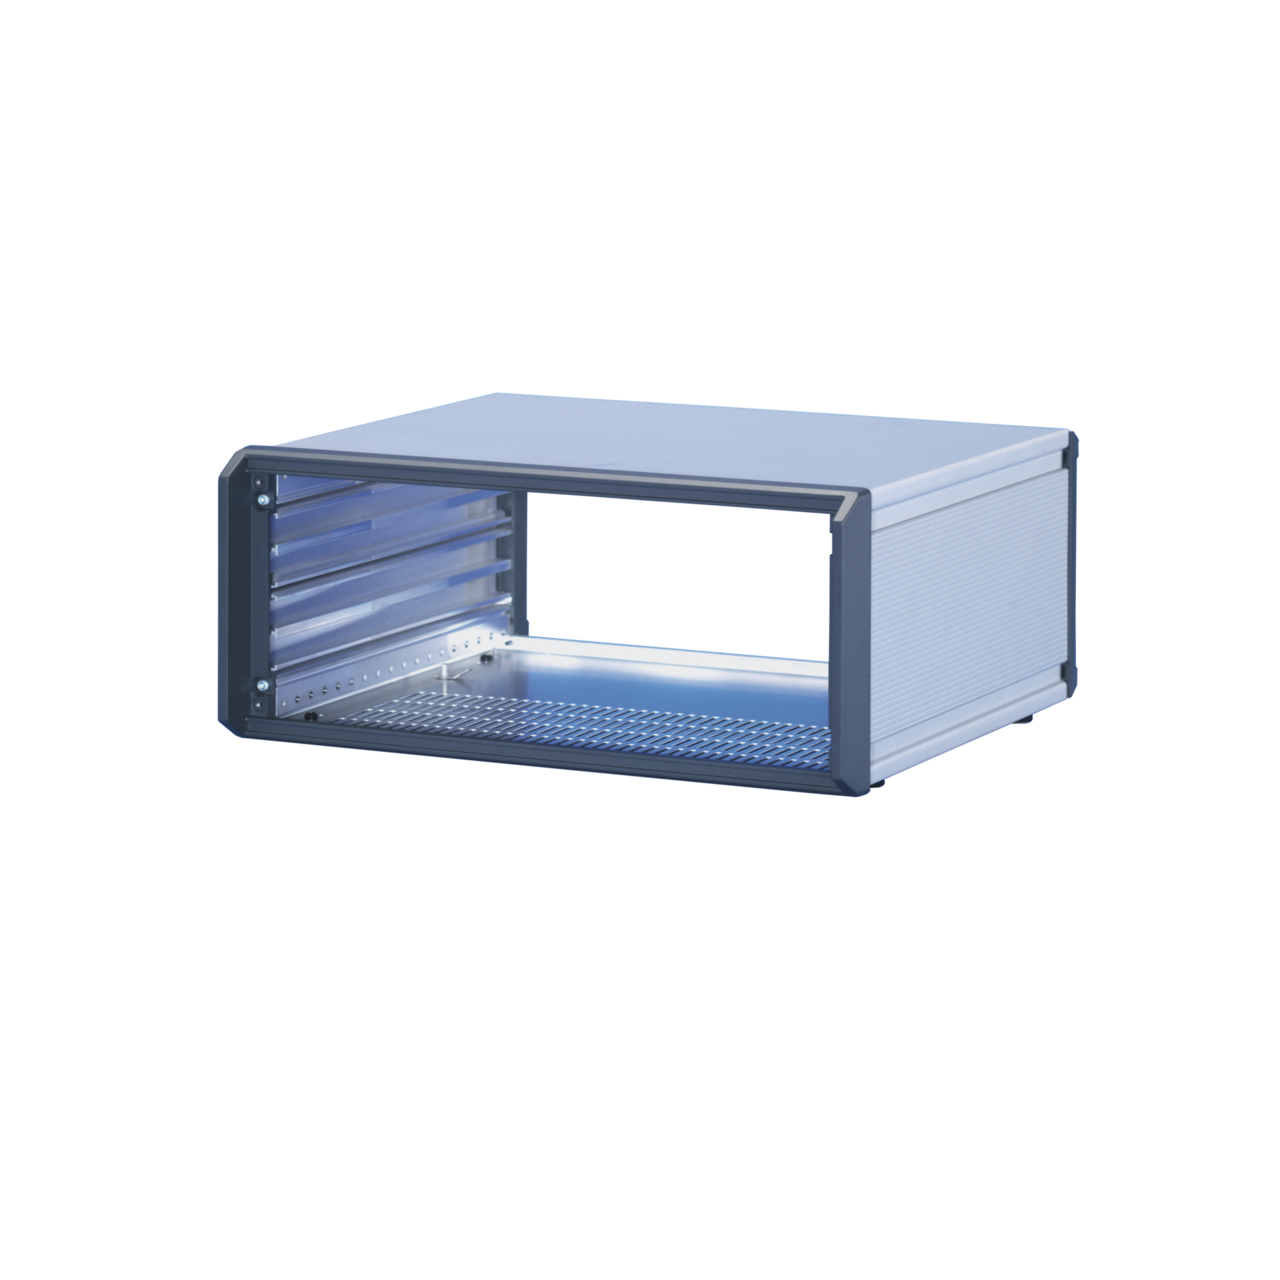 Image for PropacPRO, Case, Unshielded, Desktop from Schroff | Europe, Middle East, Africa and India